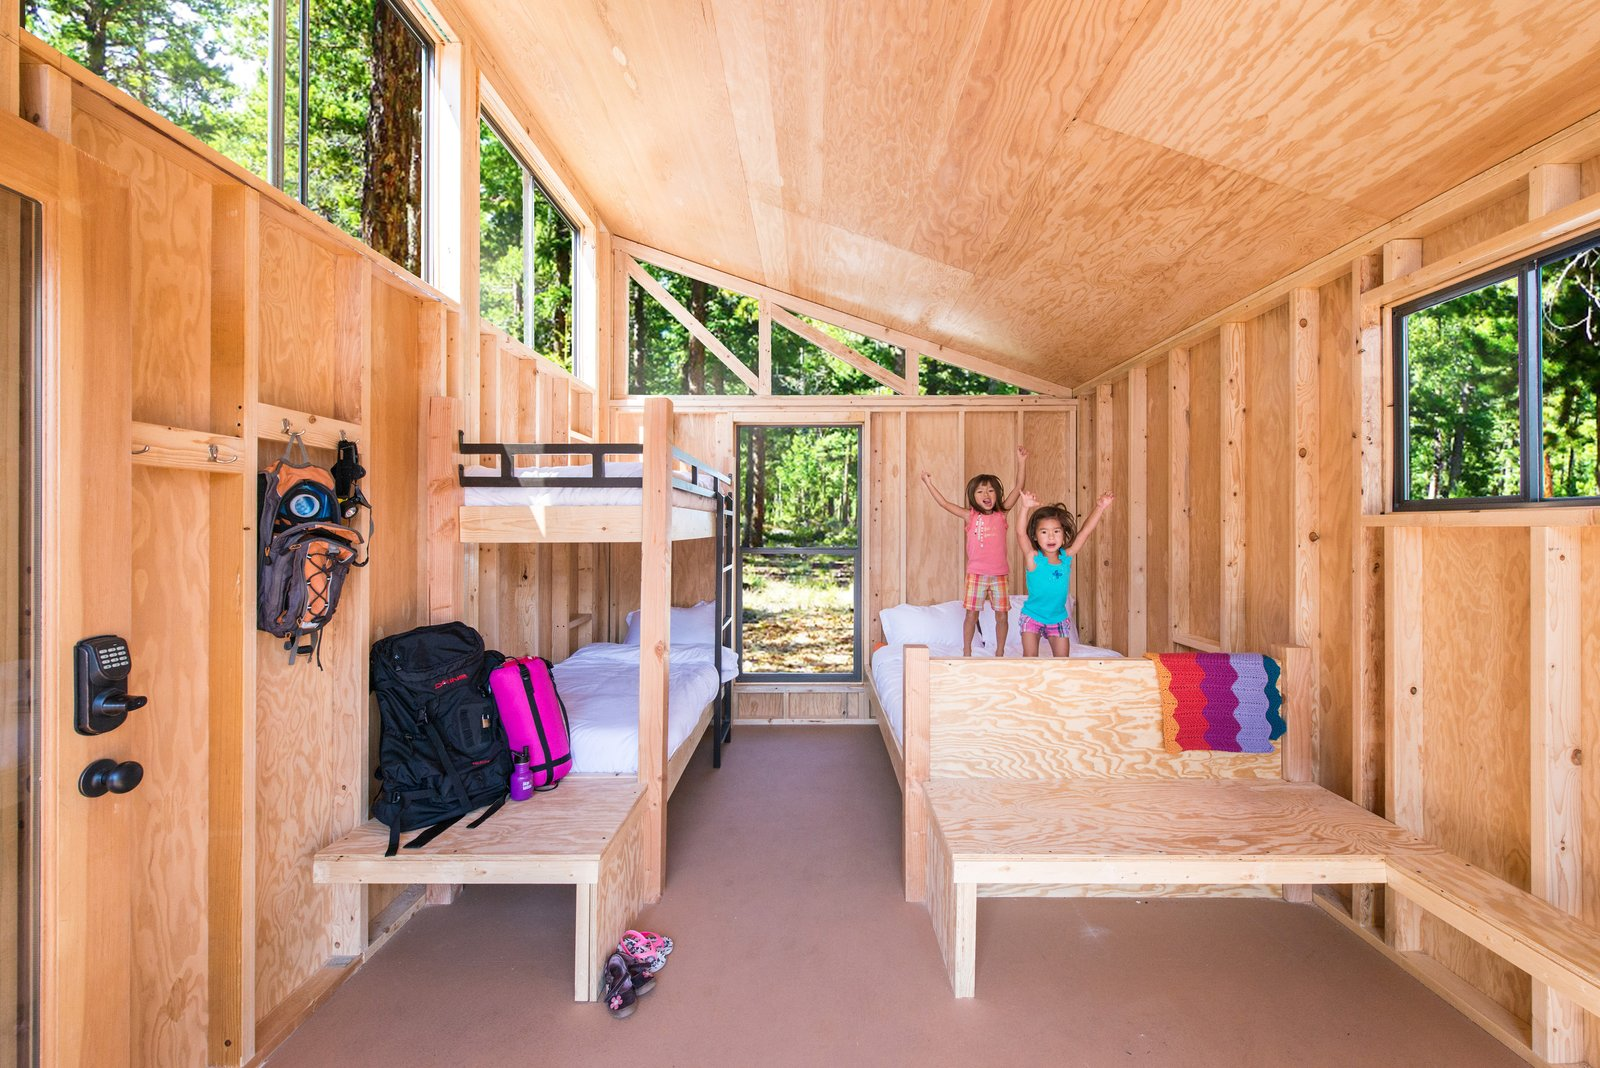 The structures were designed by Cal State Polytechnic University, Pomona, students. Tagged: Bedroom, Bunks, Bed, and Chair.  Photo 1 of 12 in 10 Prefabricated or Modular Structures That Use Plywood in Creative Ways from Modern Prefab Cabins for California State Parks